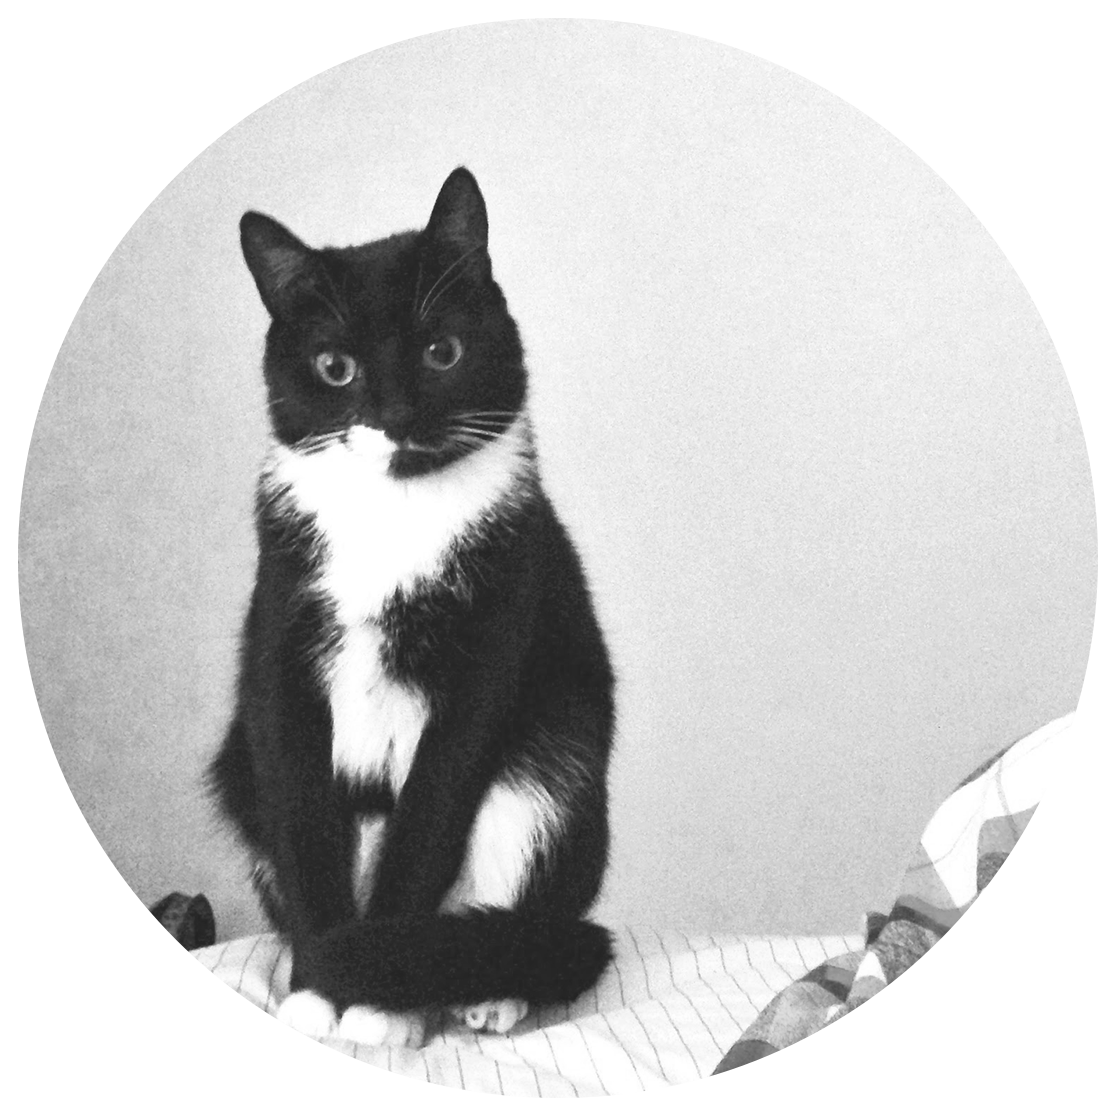 Nala   Nala was born and rescued on the streets of West Philly. She's a sweetie who isn't afraid to take care of business. Don't let her fancy tuxedo coat fool you, she loves a good shoe string or bottle cap. However Nala's current favorite toy is the trusty laser pointer.